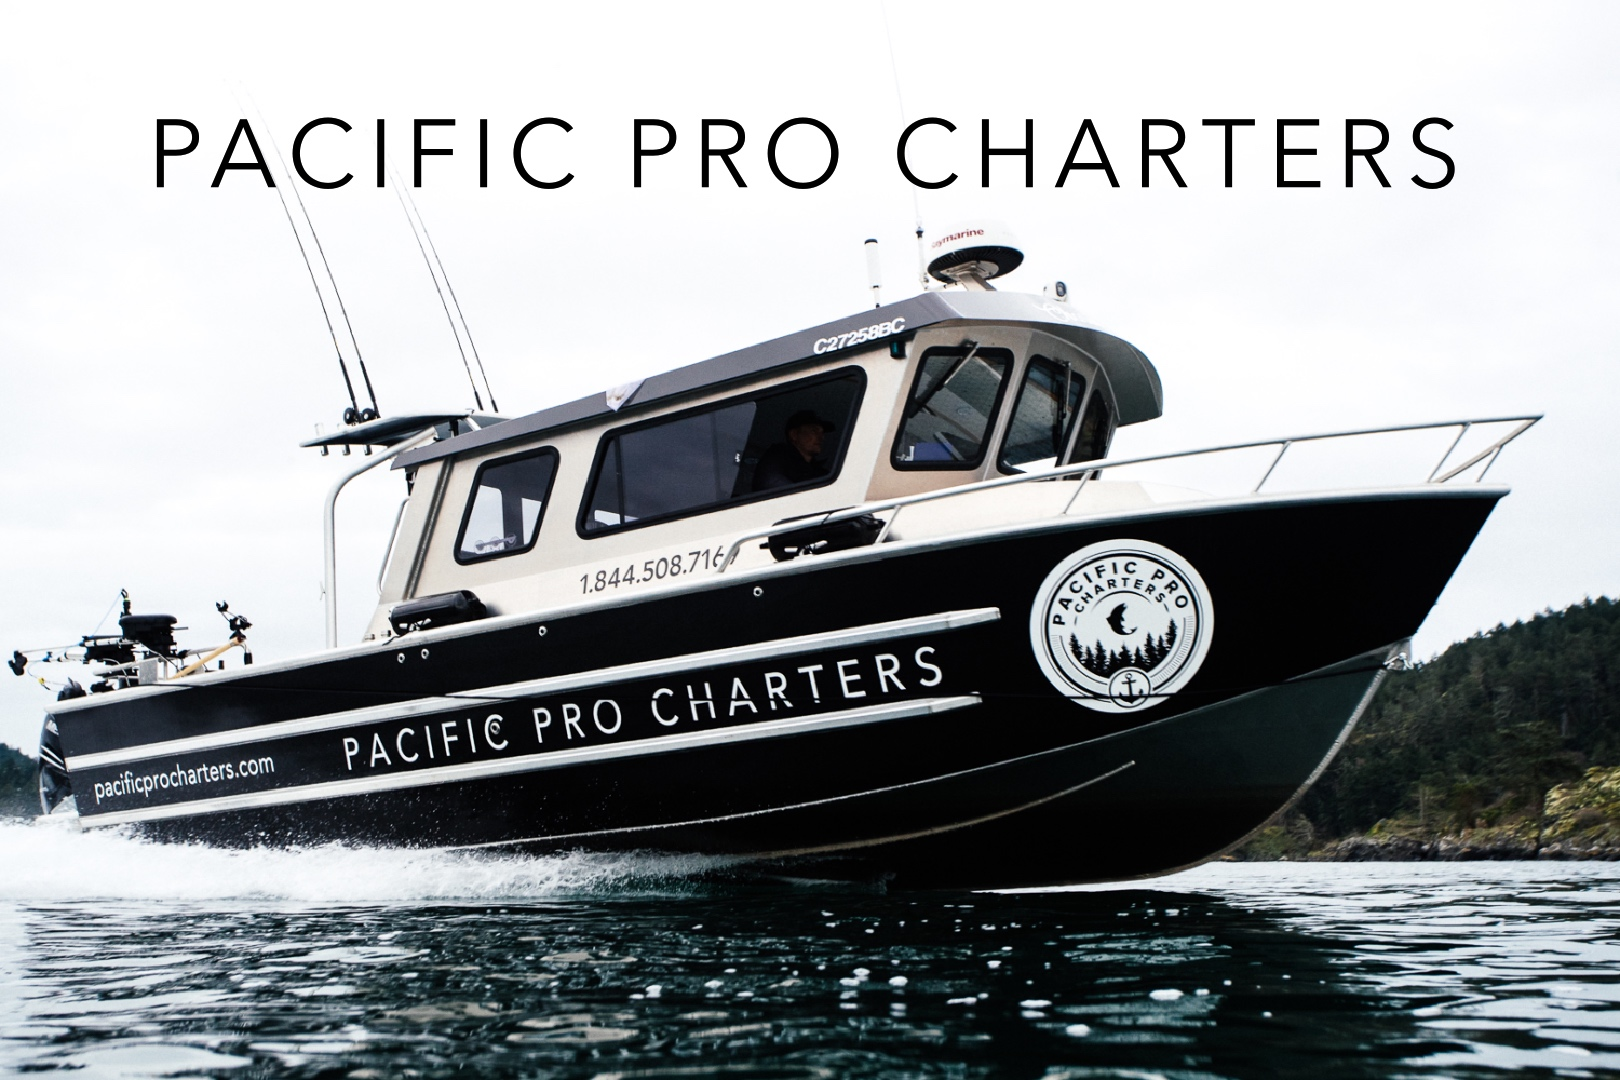 Pacific Pro Charters.jpg